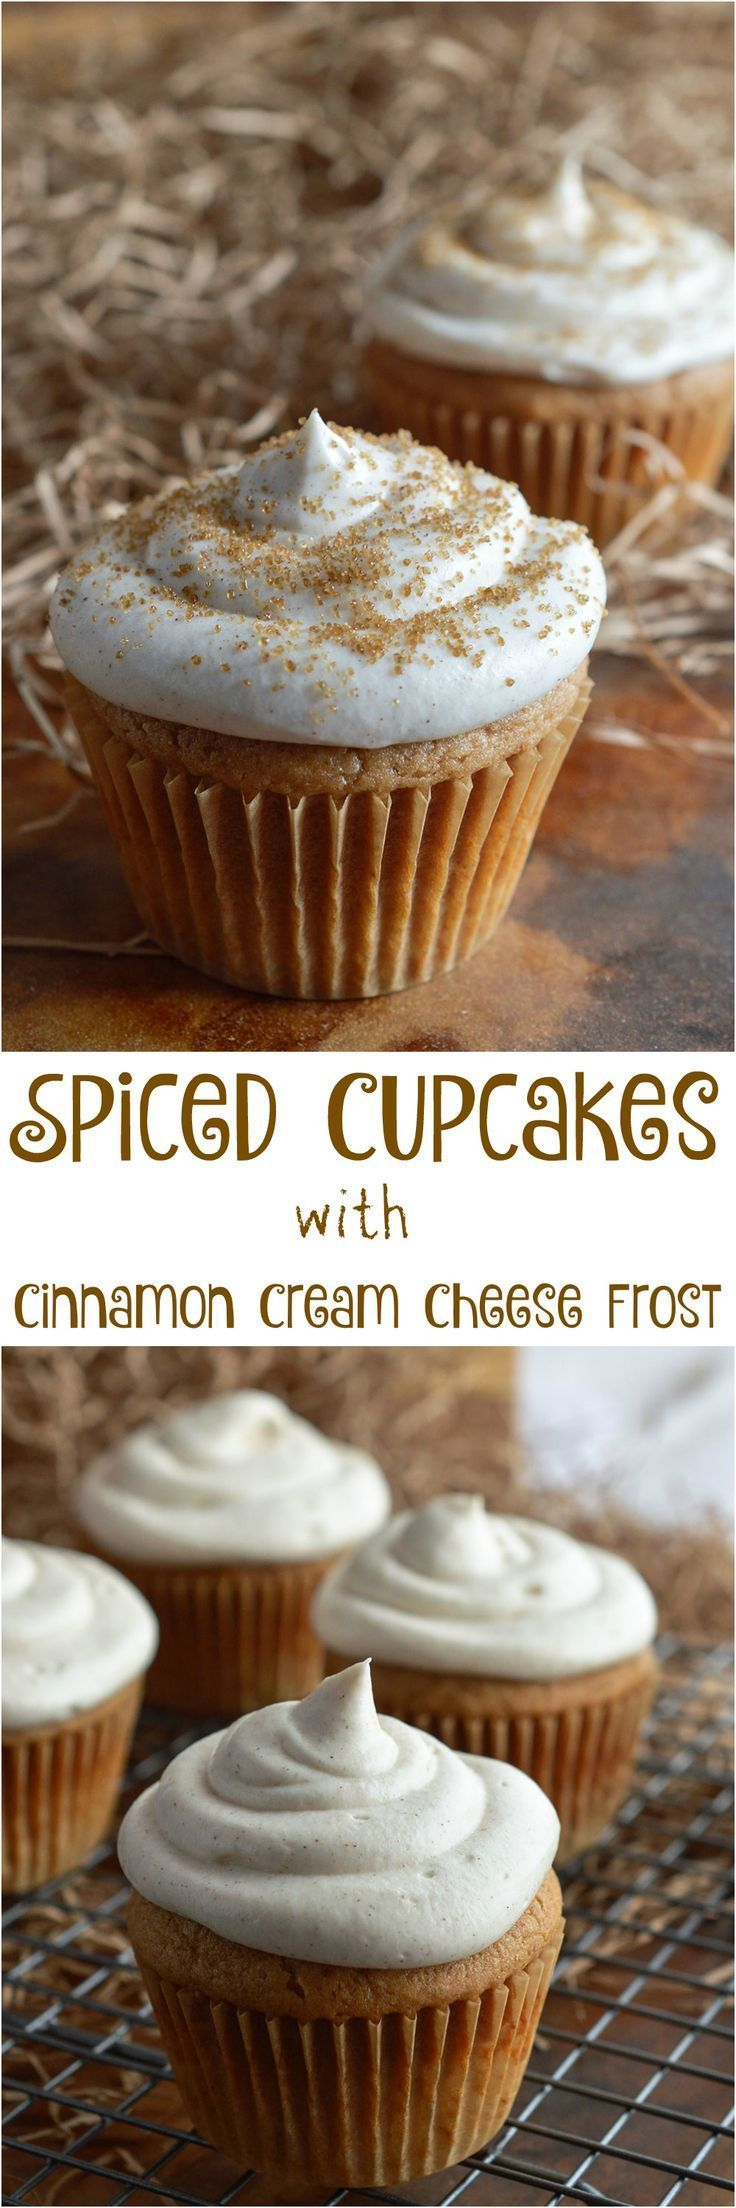 Spiced Cupcakes with Cinnamon Cream Cheese Frosting are the perfect Fall dessert! This easy recipe is great for holiday parties and meals. A very special secret ingredients adds a blast of flavor!